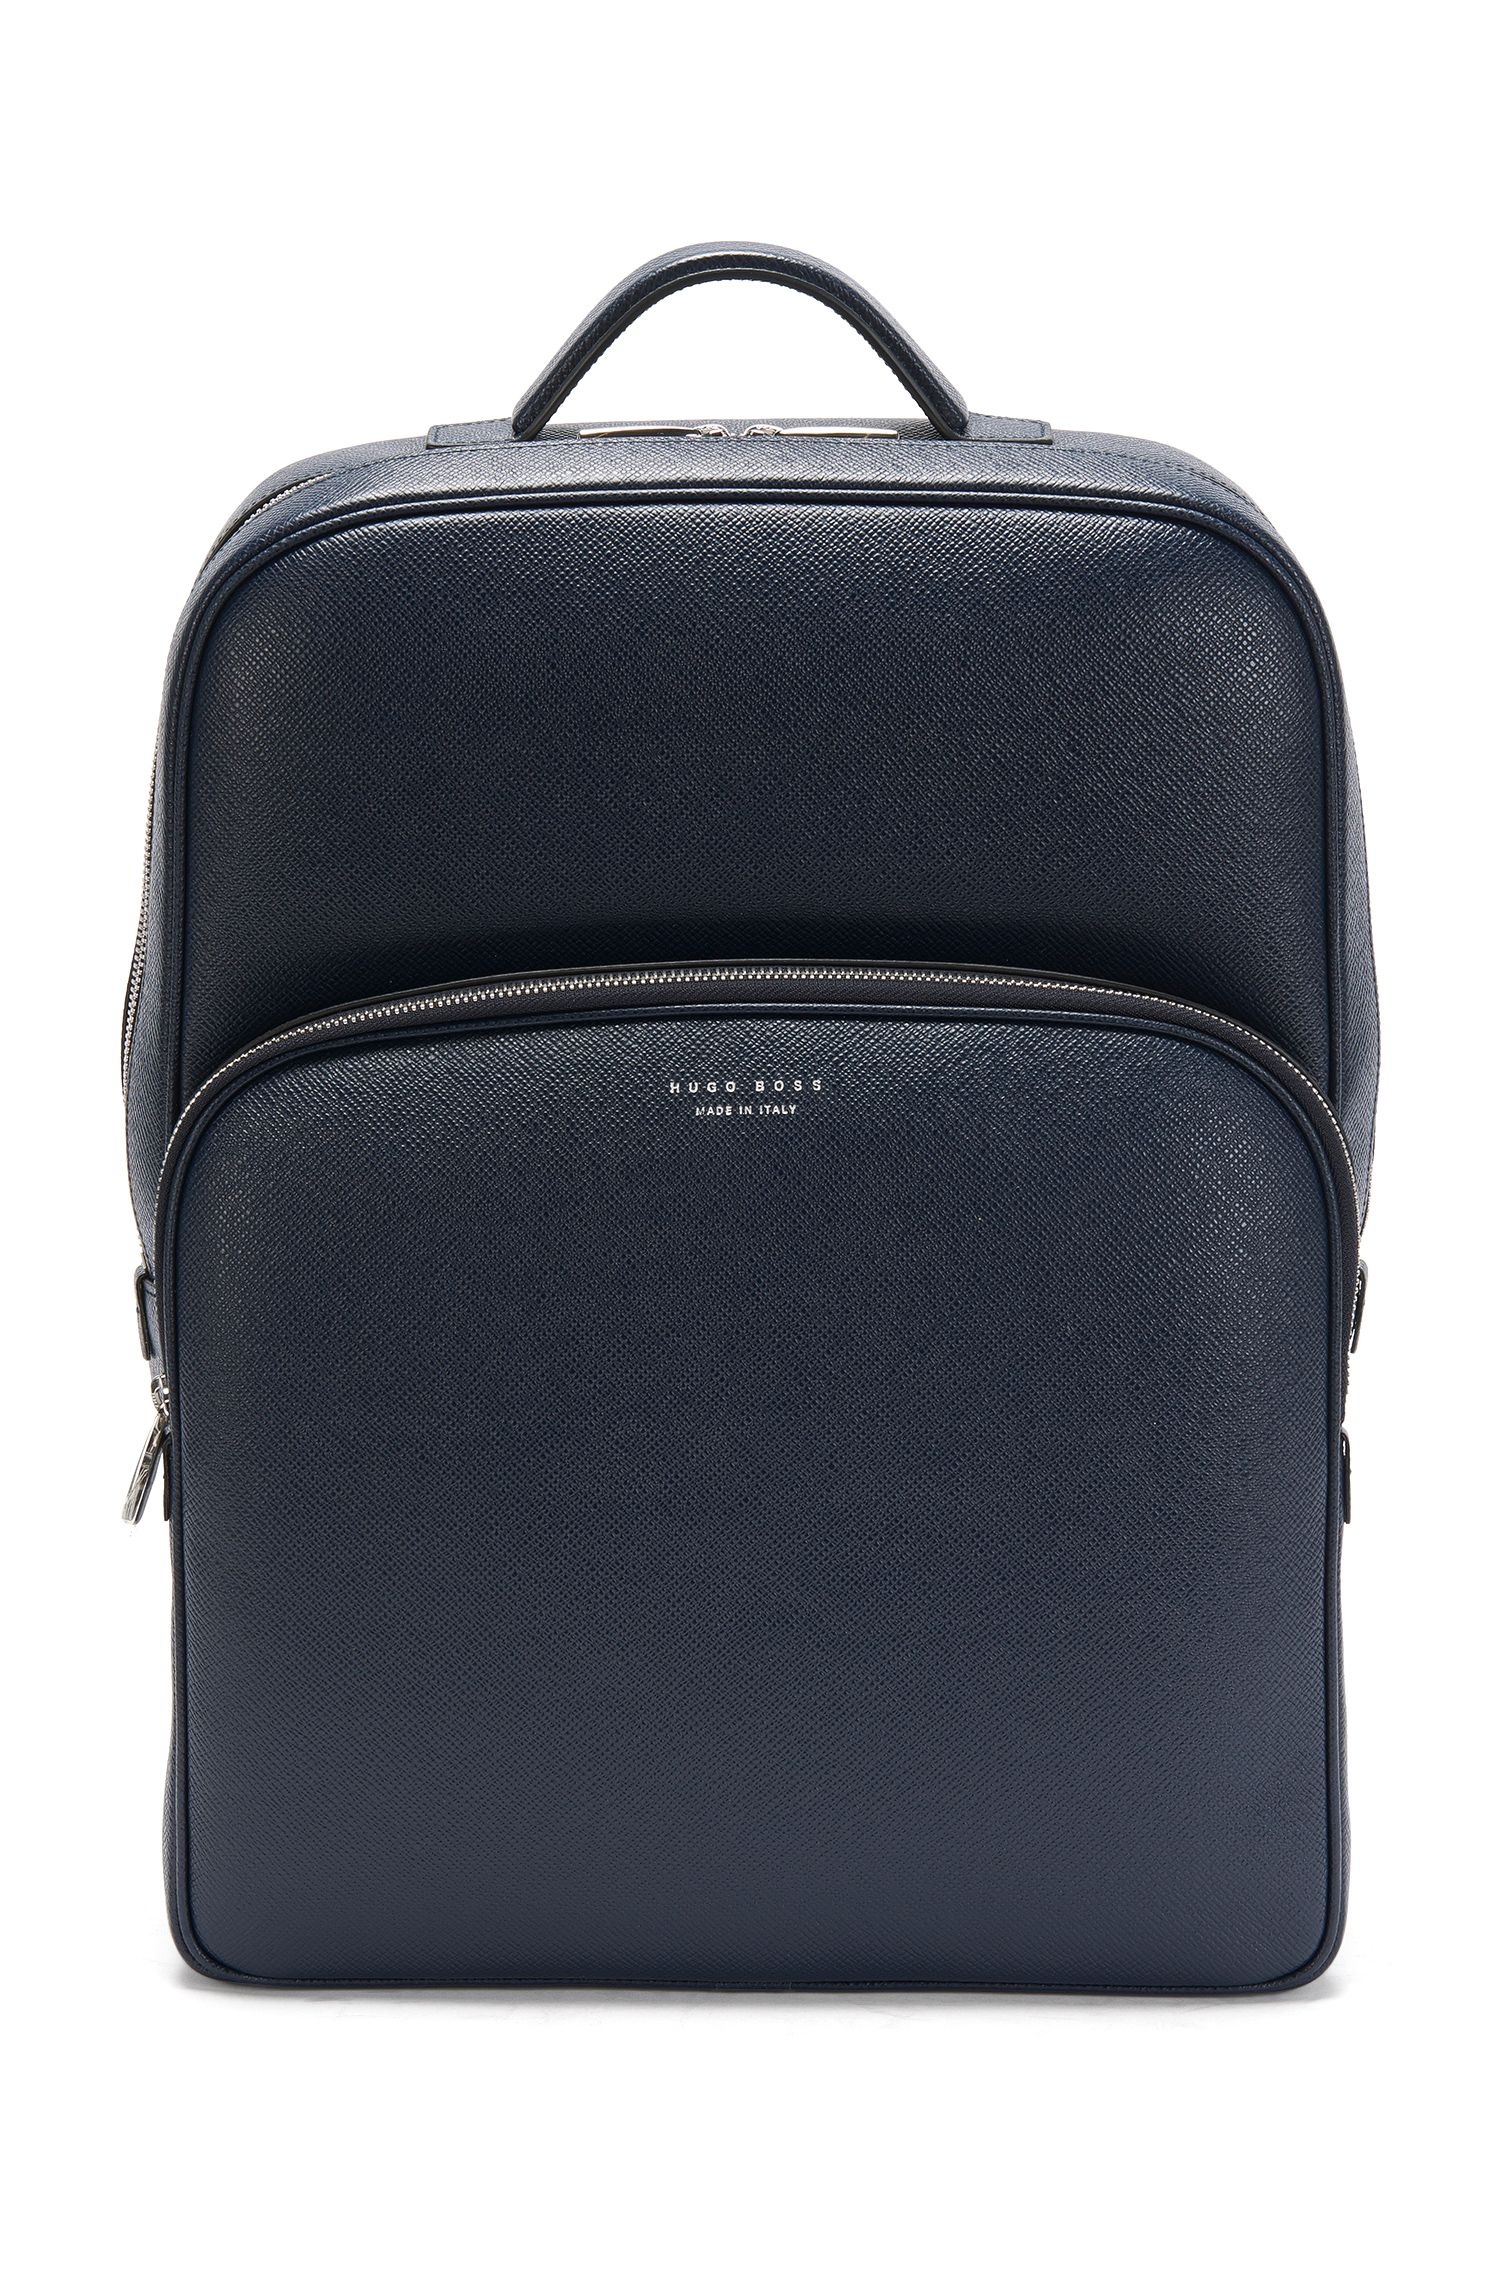 Sac à dos en cuir Palmellato : « Signature_B Backpack »